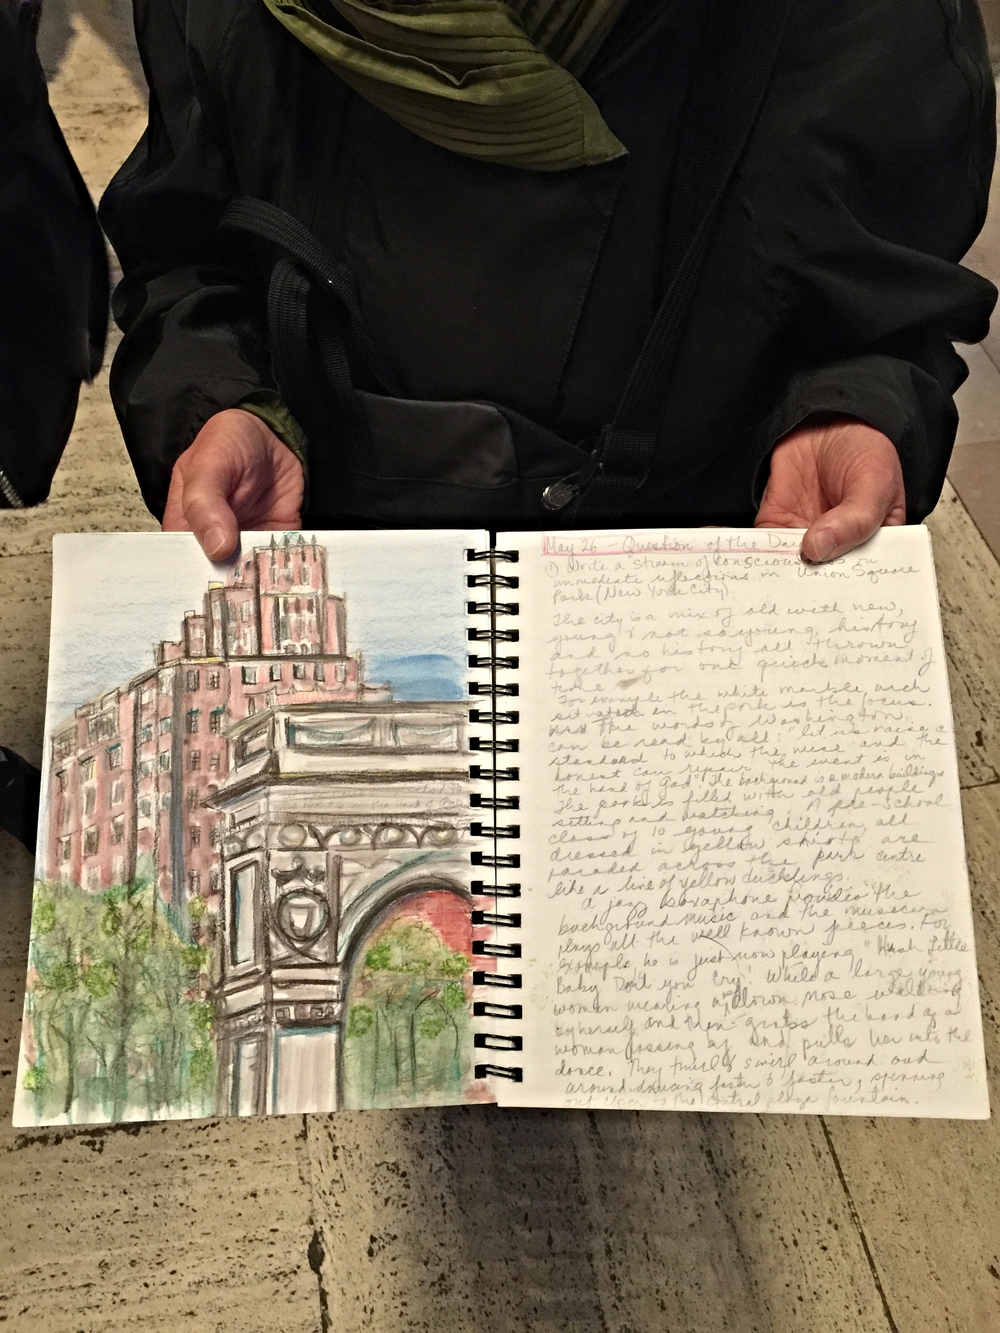 Margaret kept one of the most comprehensive and lovingly rendered journals on the trip-- here is a look inside a few of her pages with a sketch of Washington Square Park.